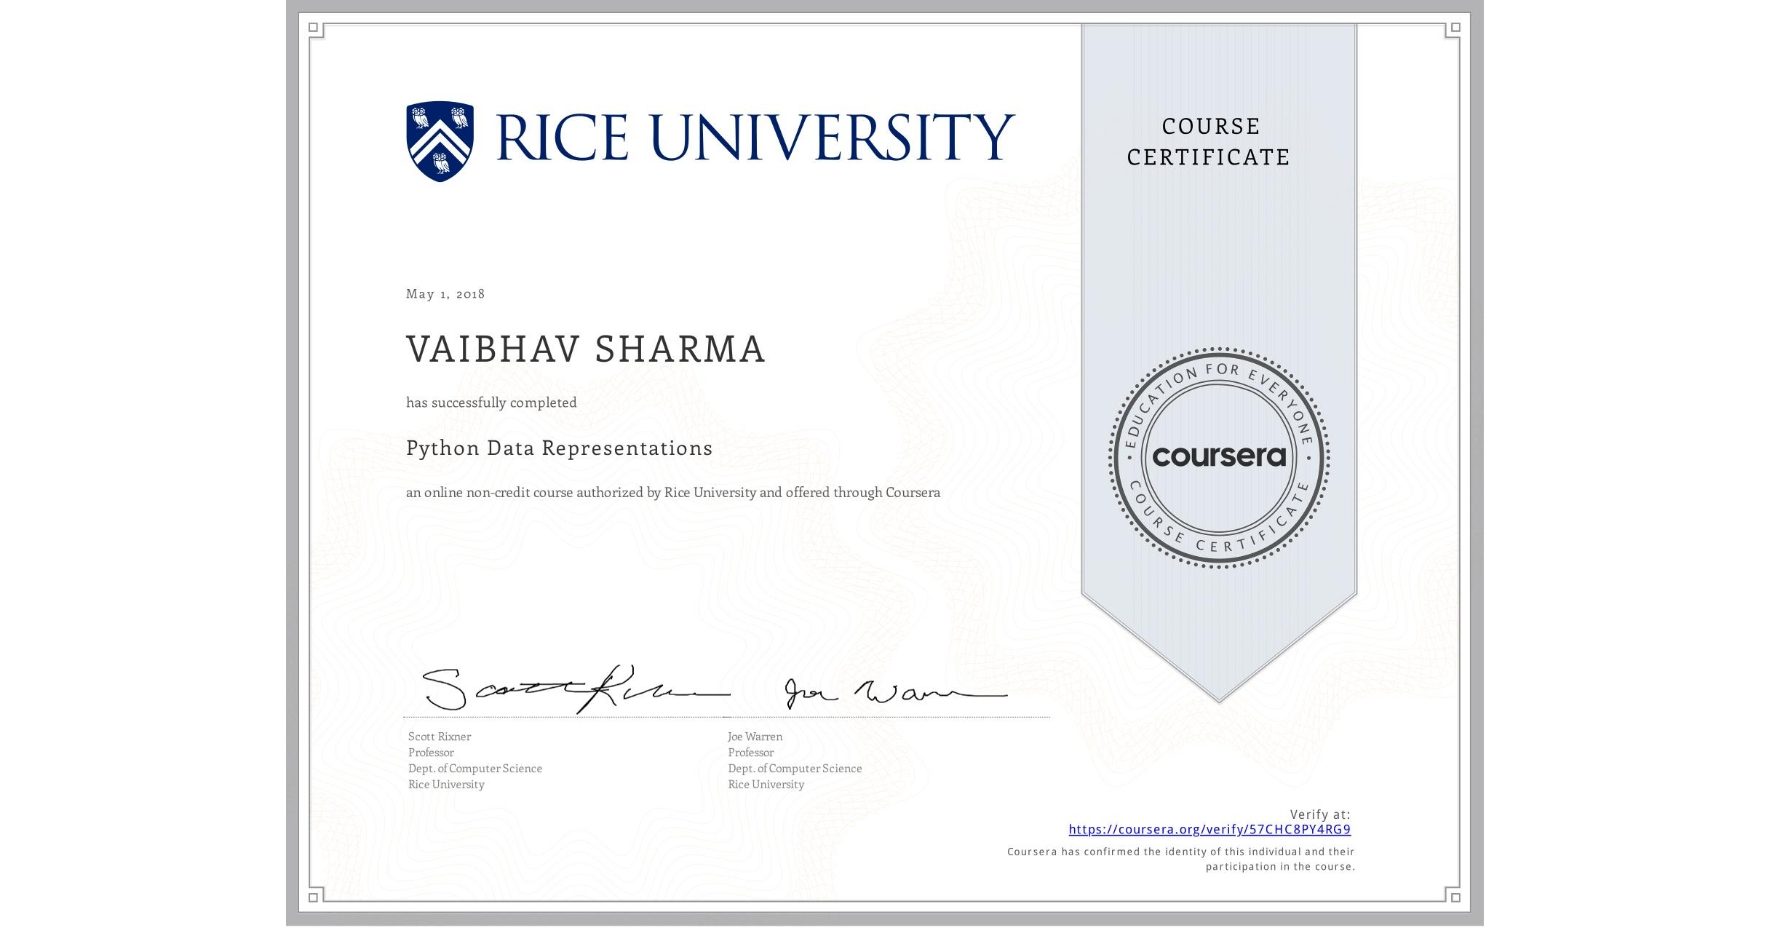 View certificate for VAIBHAV SHARMA, Python Data Representations, an online non-credit course authorized by Rice University and offered through Coursera